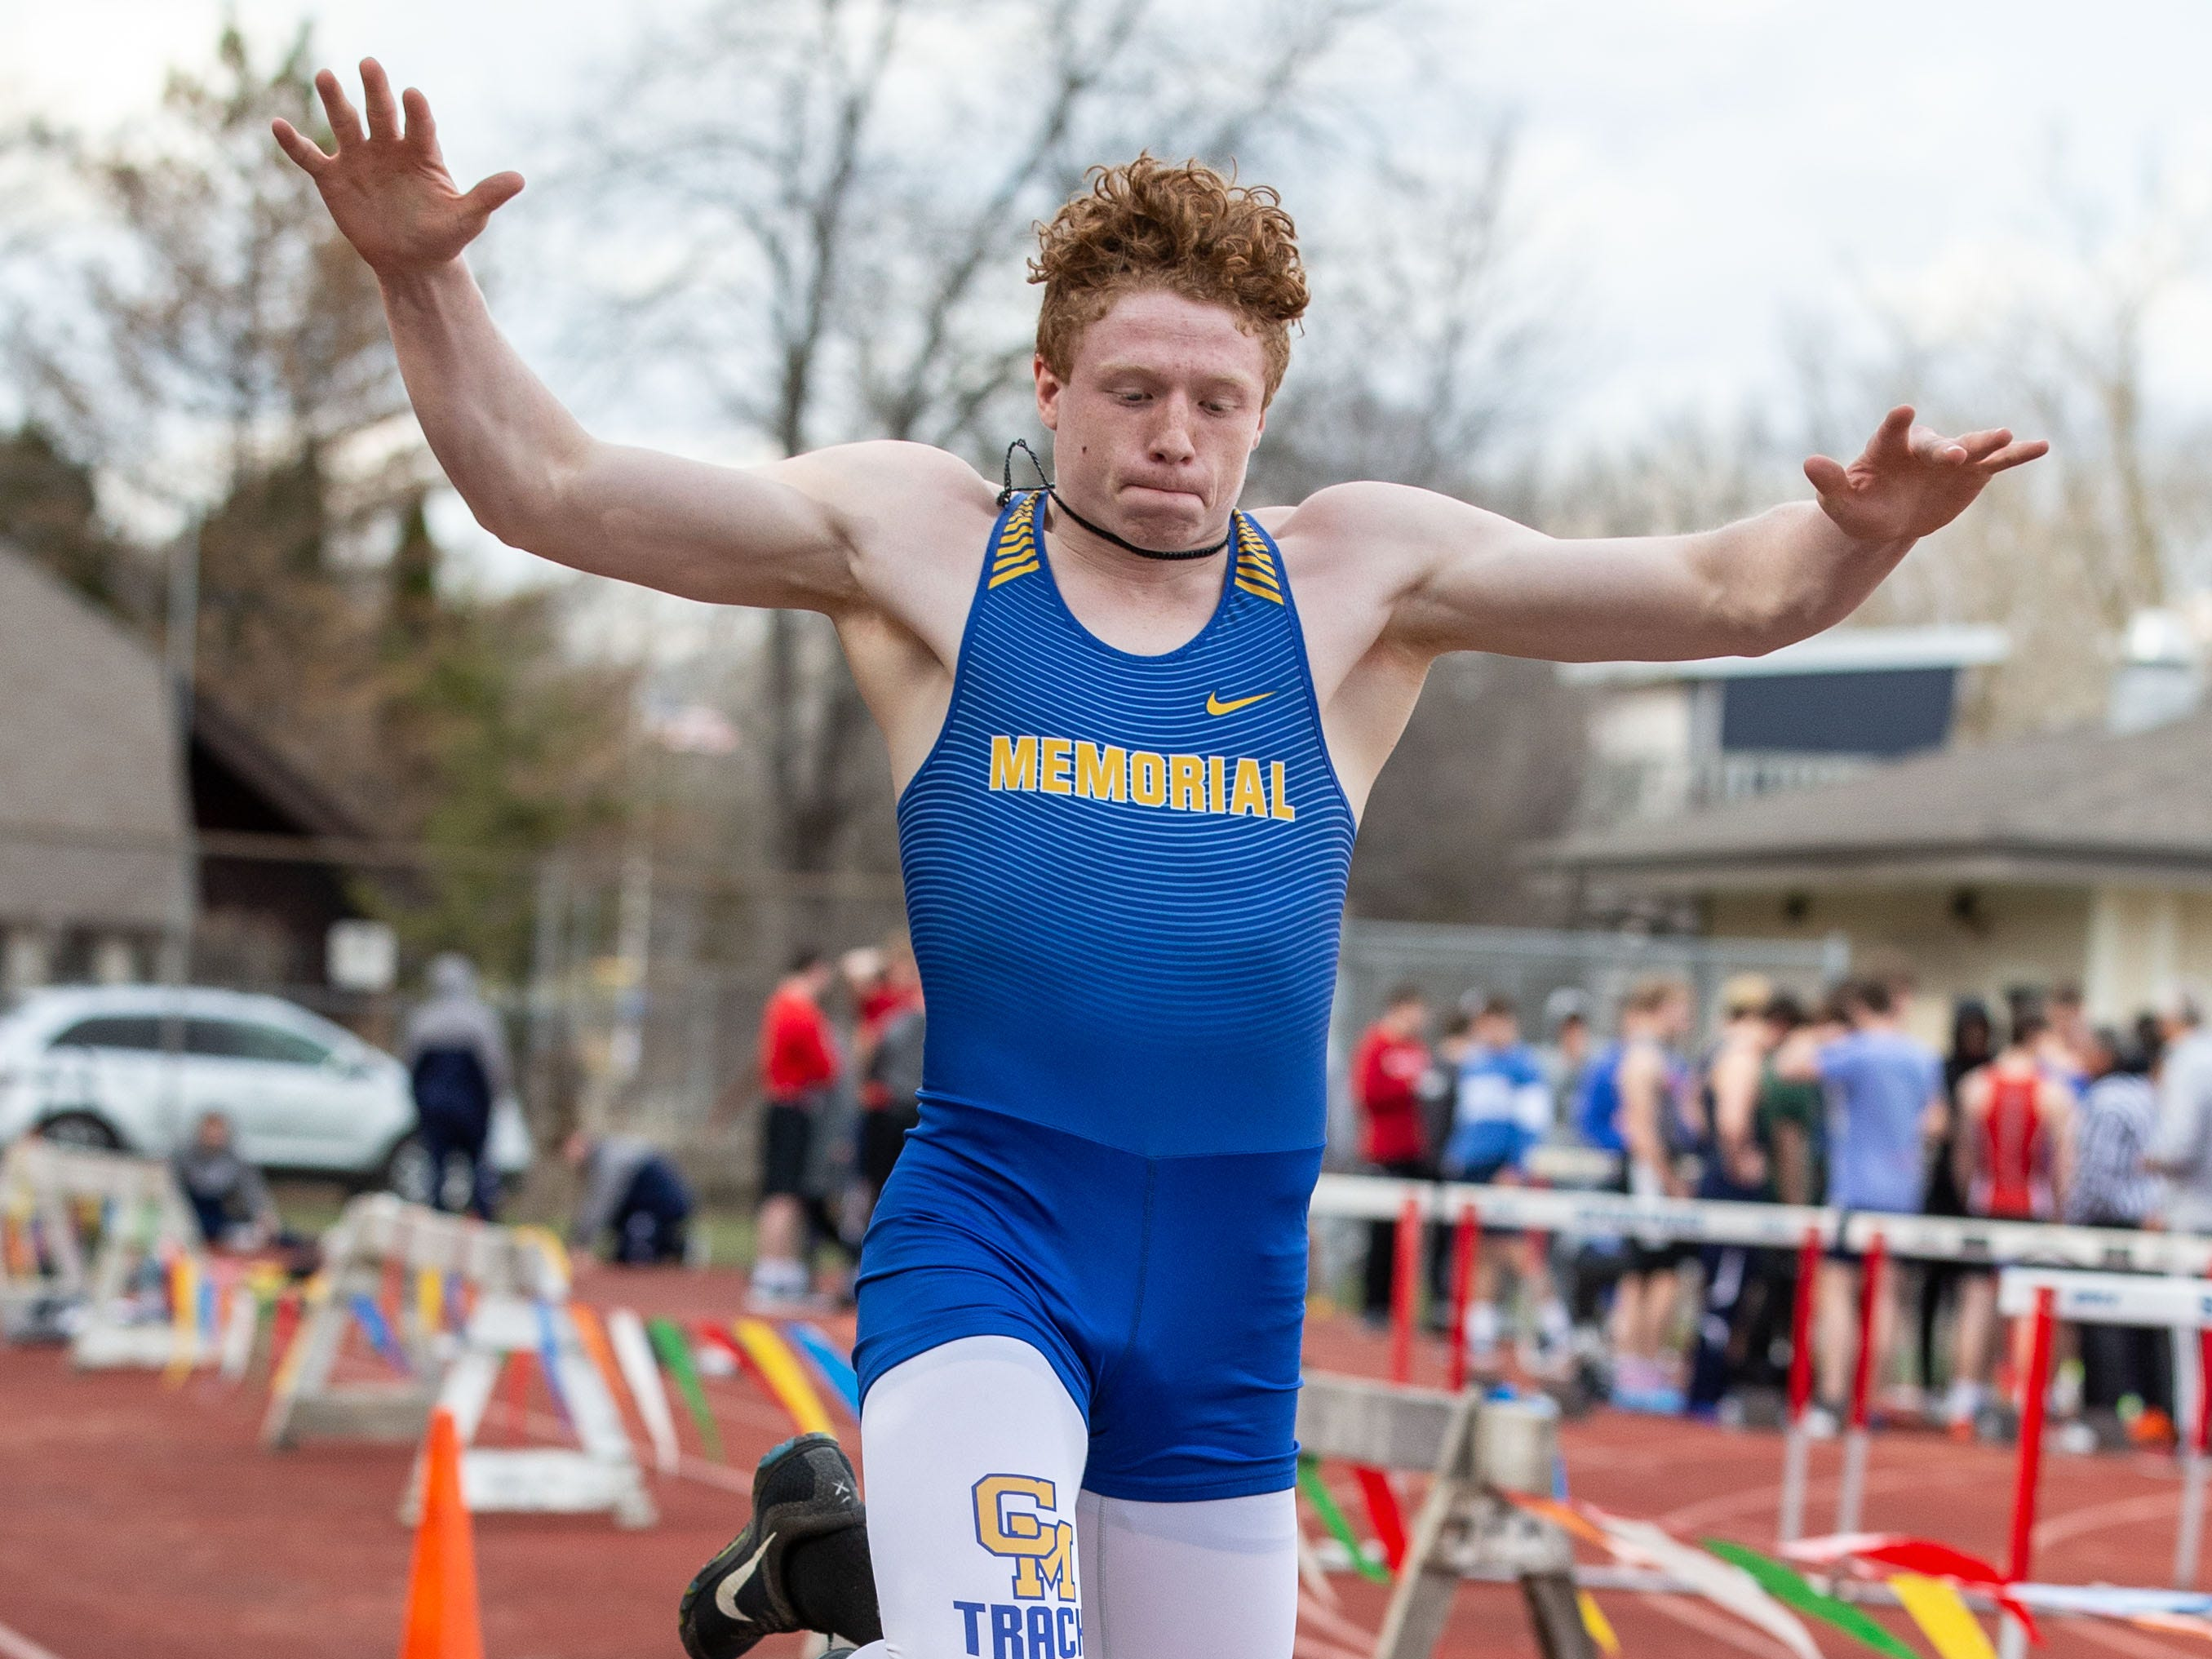 Catholic Memorial's Brian Flanagan competes in the triple jump during the Mike Gain 50th Annual Spartan Invitational at Brookfield East on Tuesday, April 9, 2019. Flanagan won the event with a jump of 40-11.00.